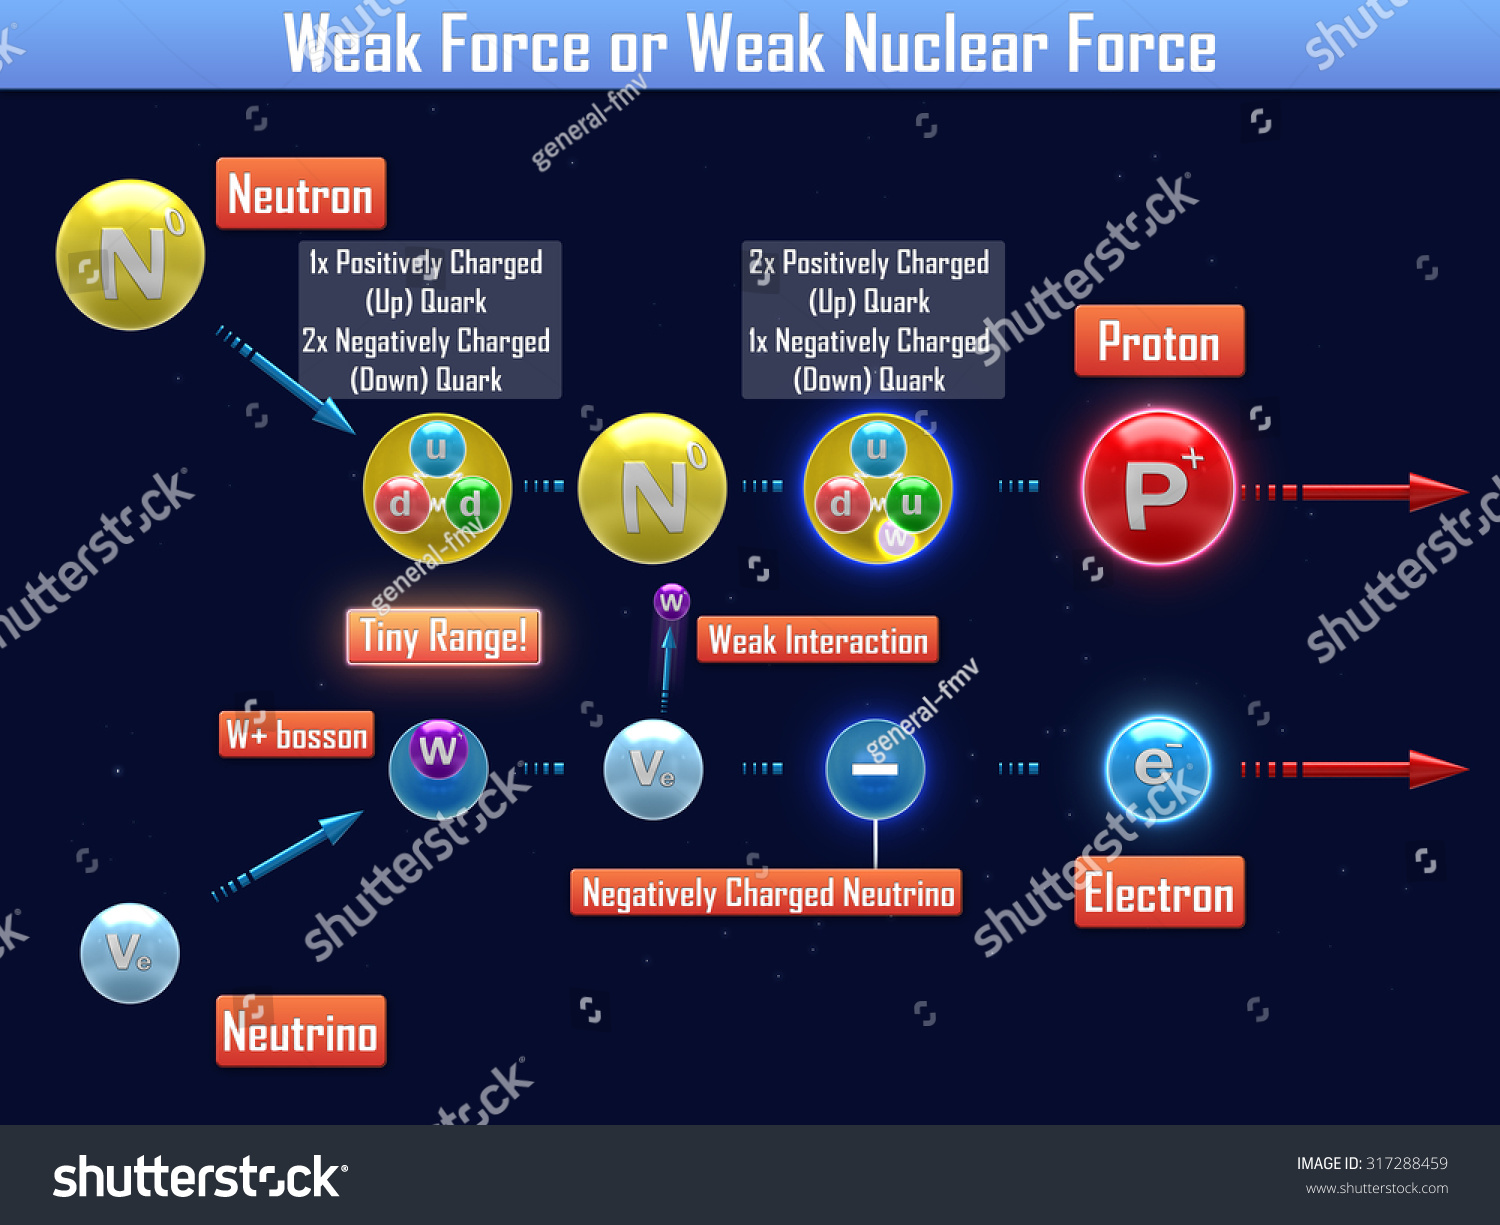 Weak Nuclear Force Clip Art